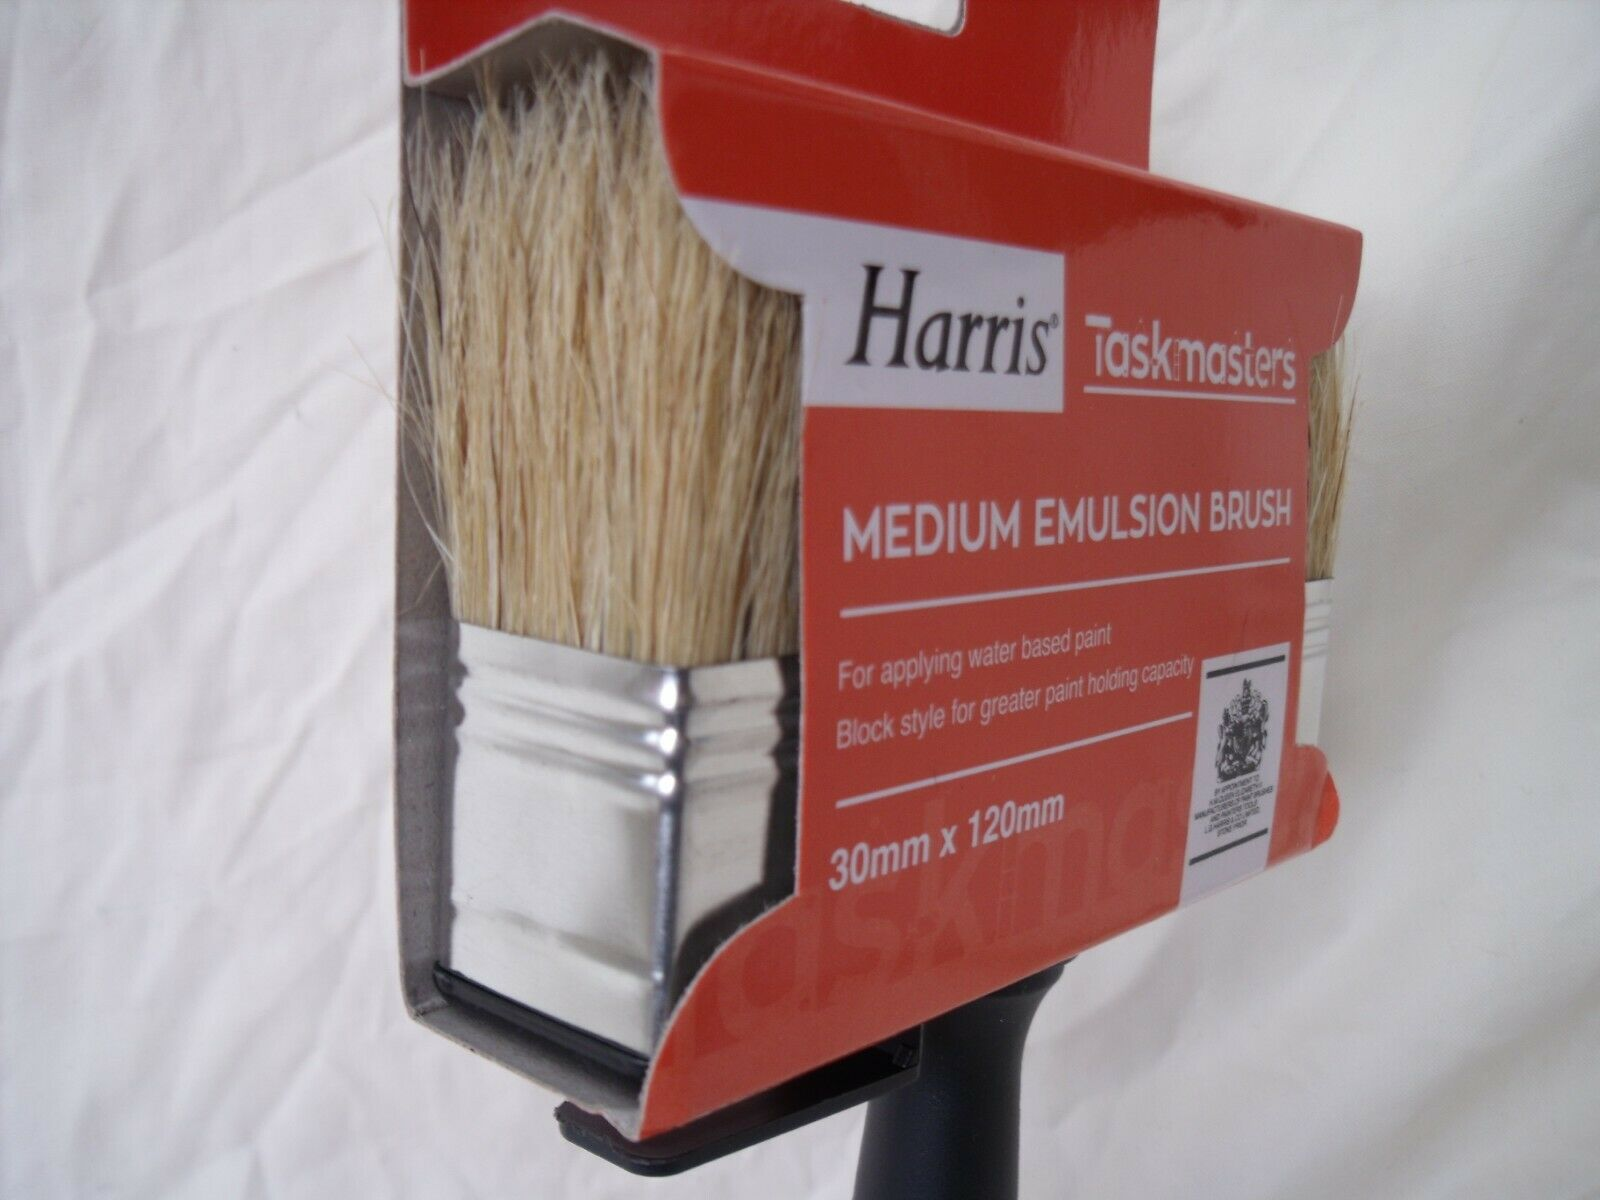 32784 - Harris brushes Europe